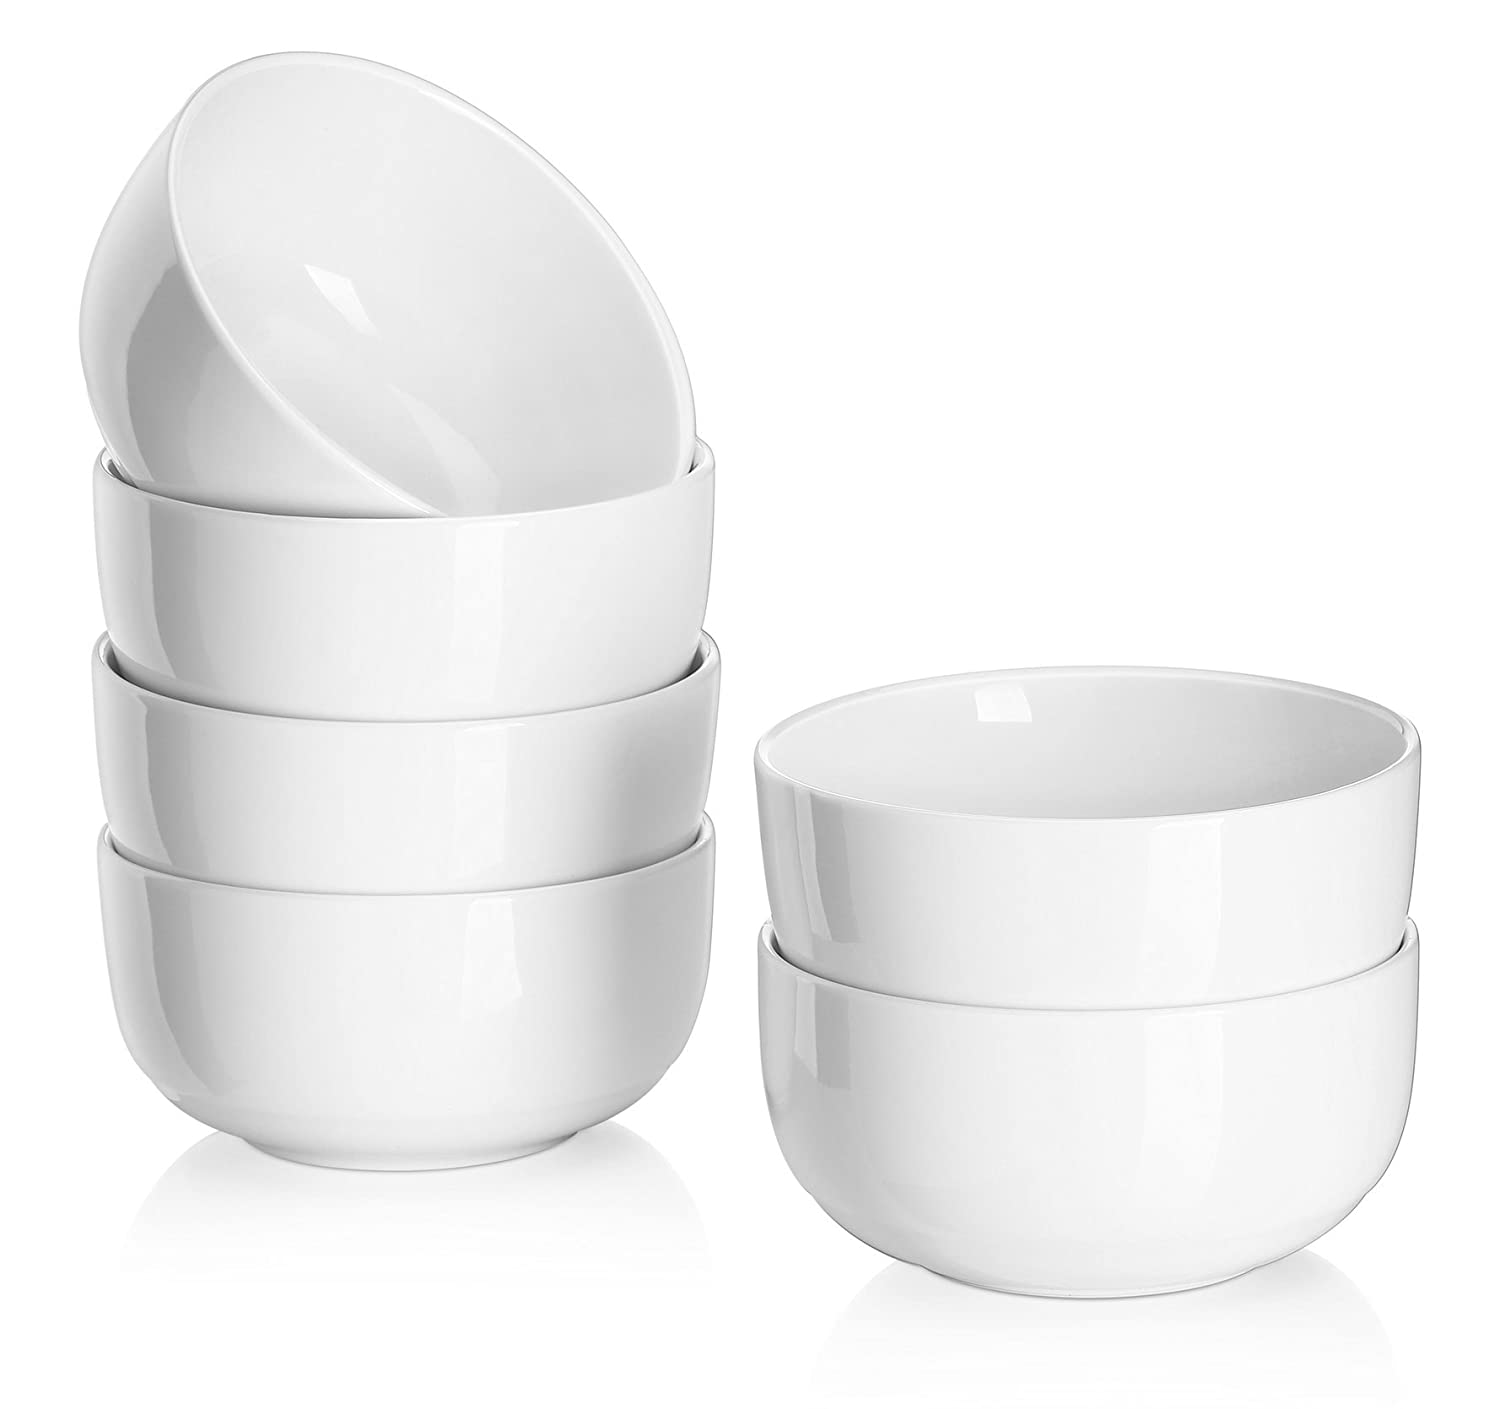 DOWAN 10-Ounce Porcelain Bowl Set - 6 Packs,White